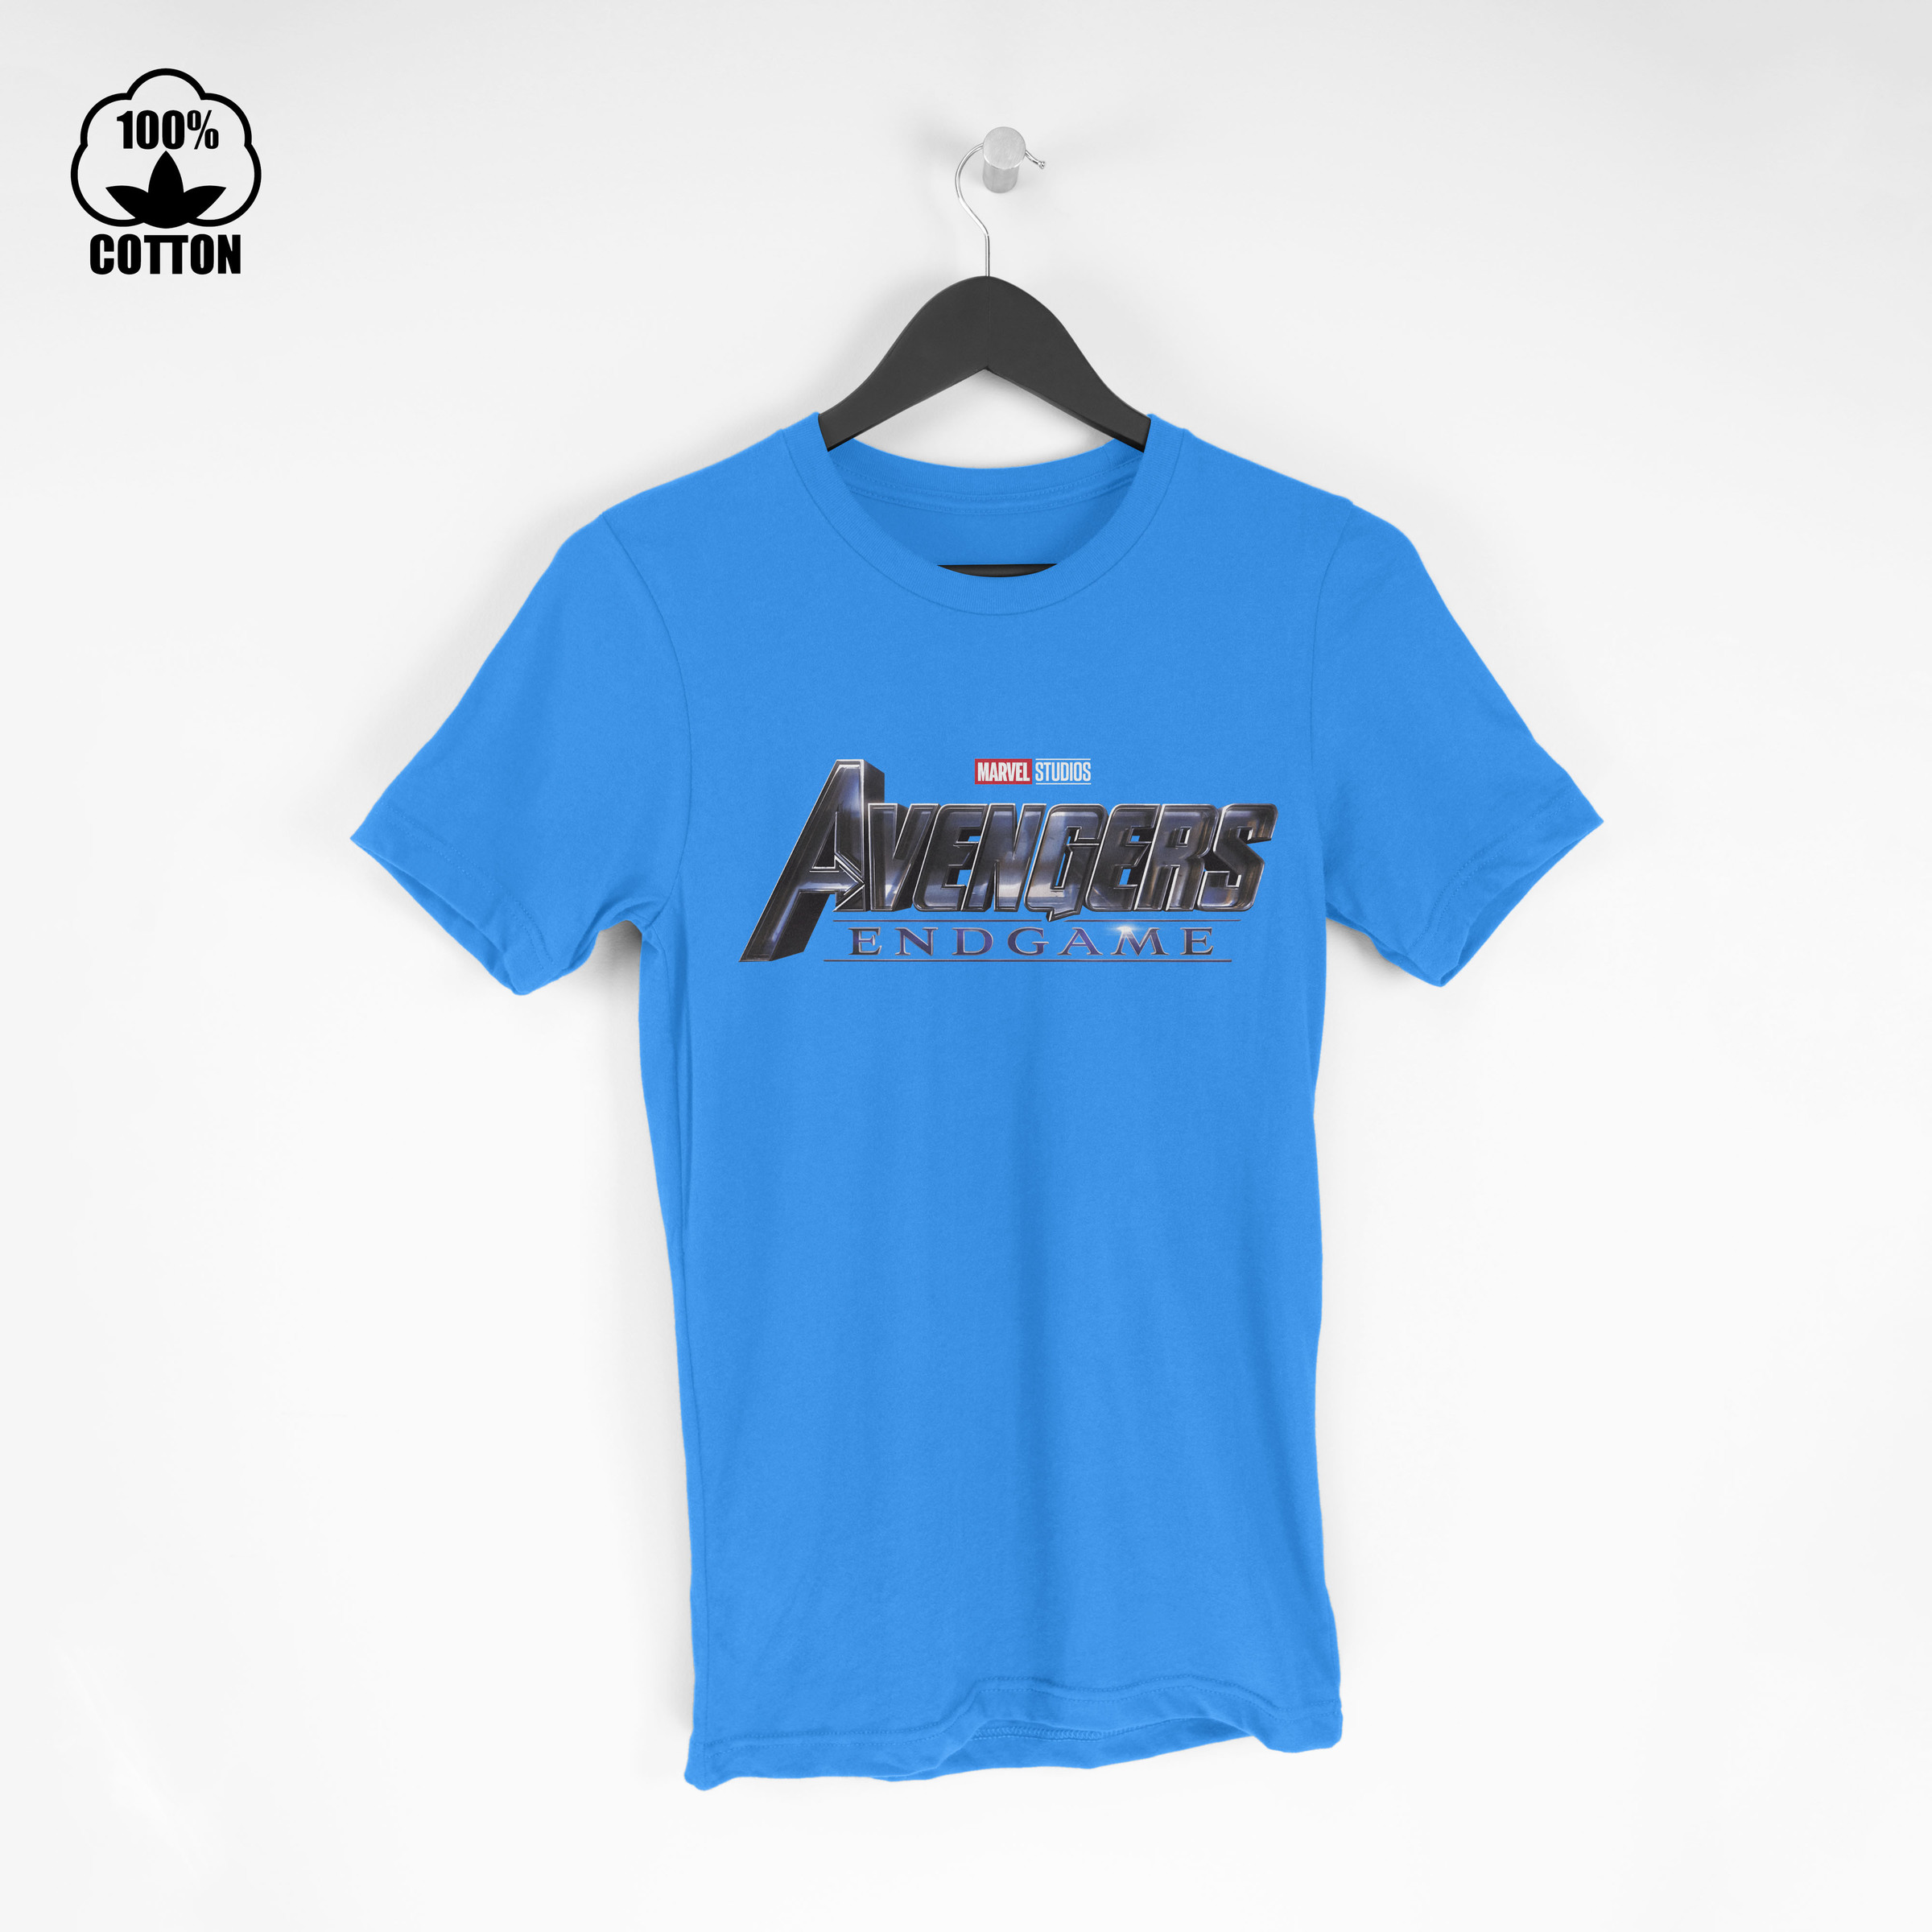 AF22_AVENGERS THE END GAME T-SHIRT Limited Edition 2.jpg